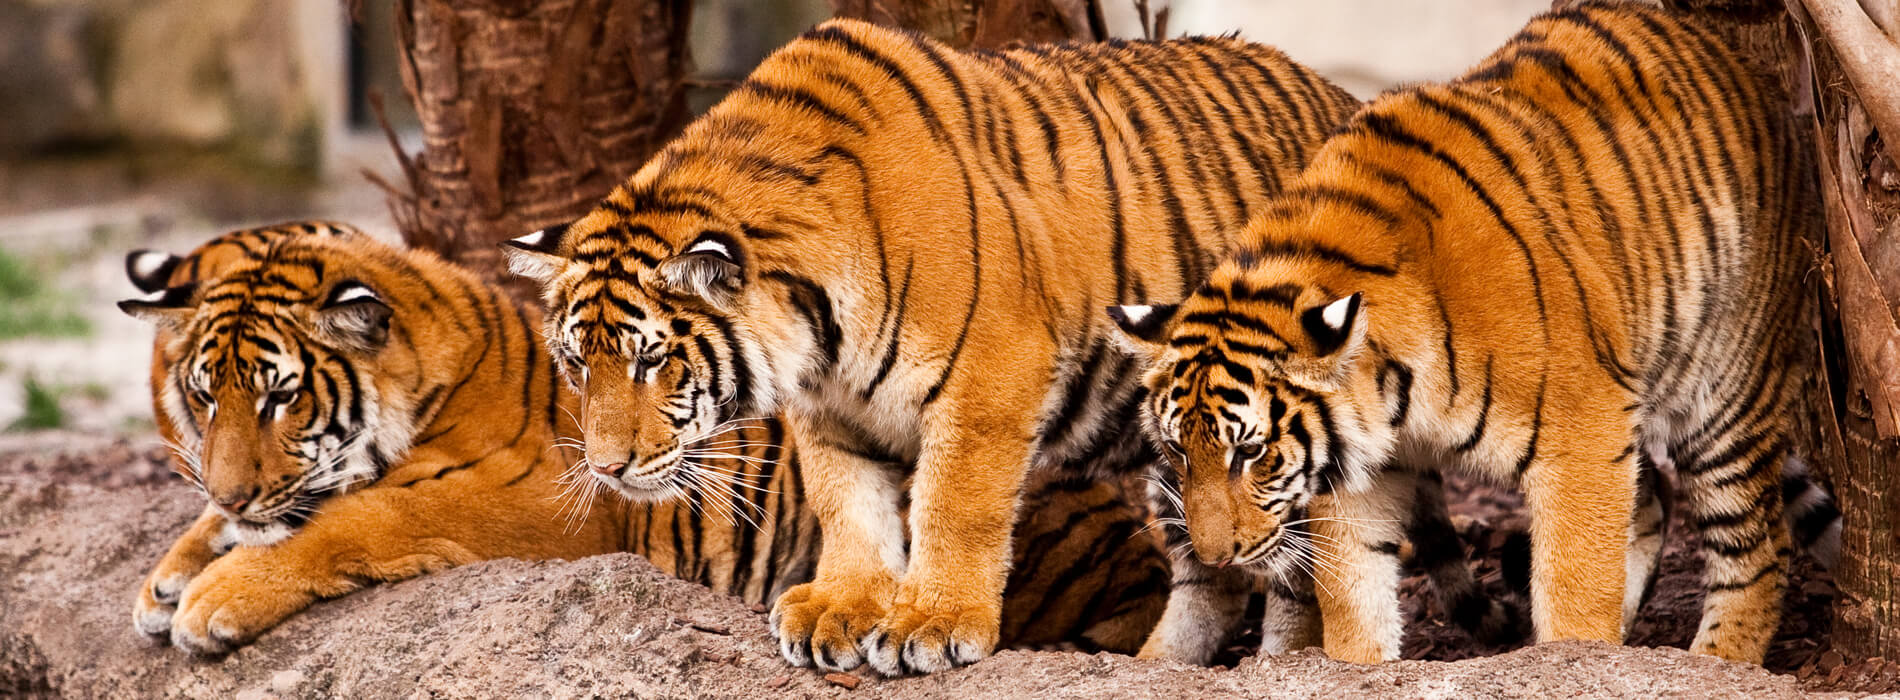 Tiger Tours - Exotic Animal Experience  Busch Gardens Tampa Bay